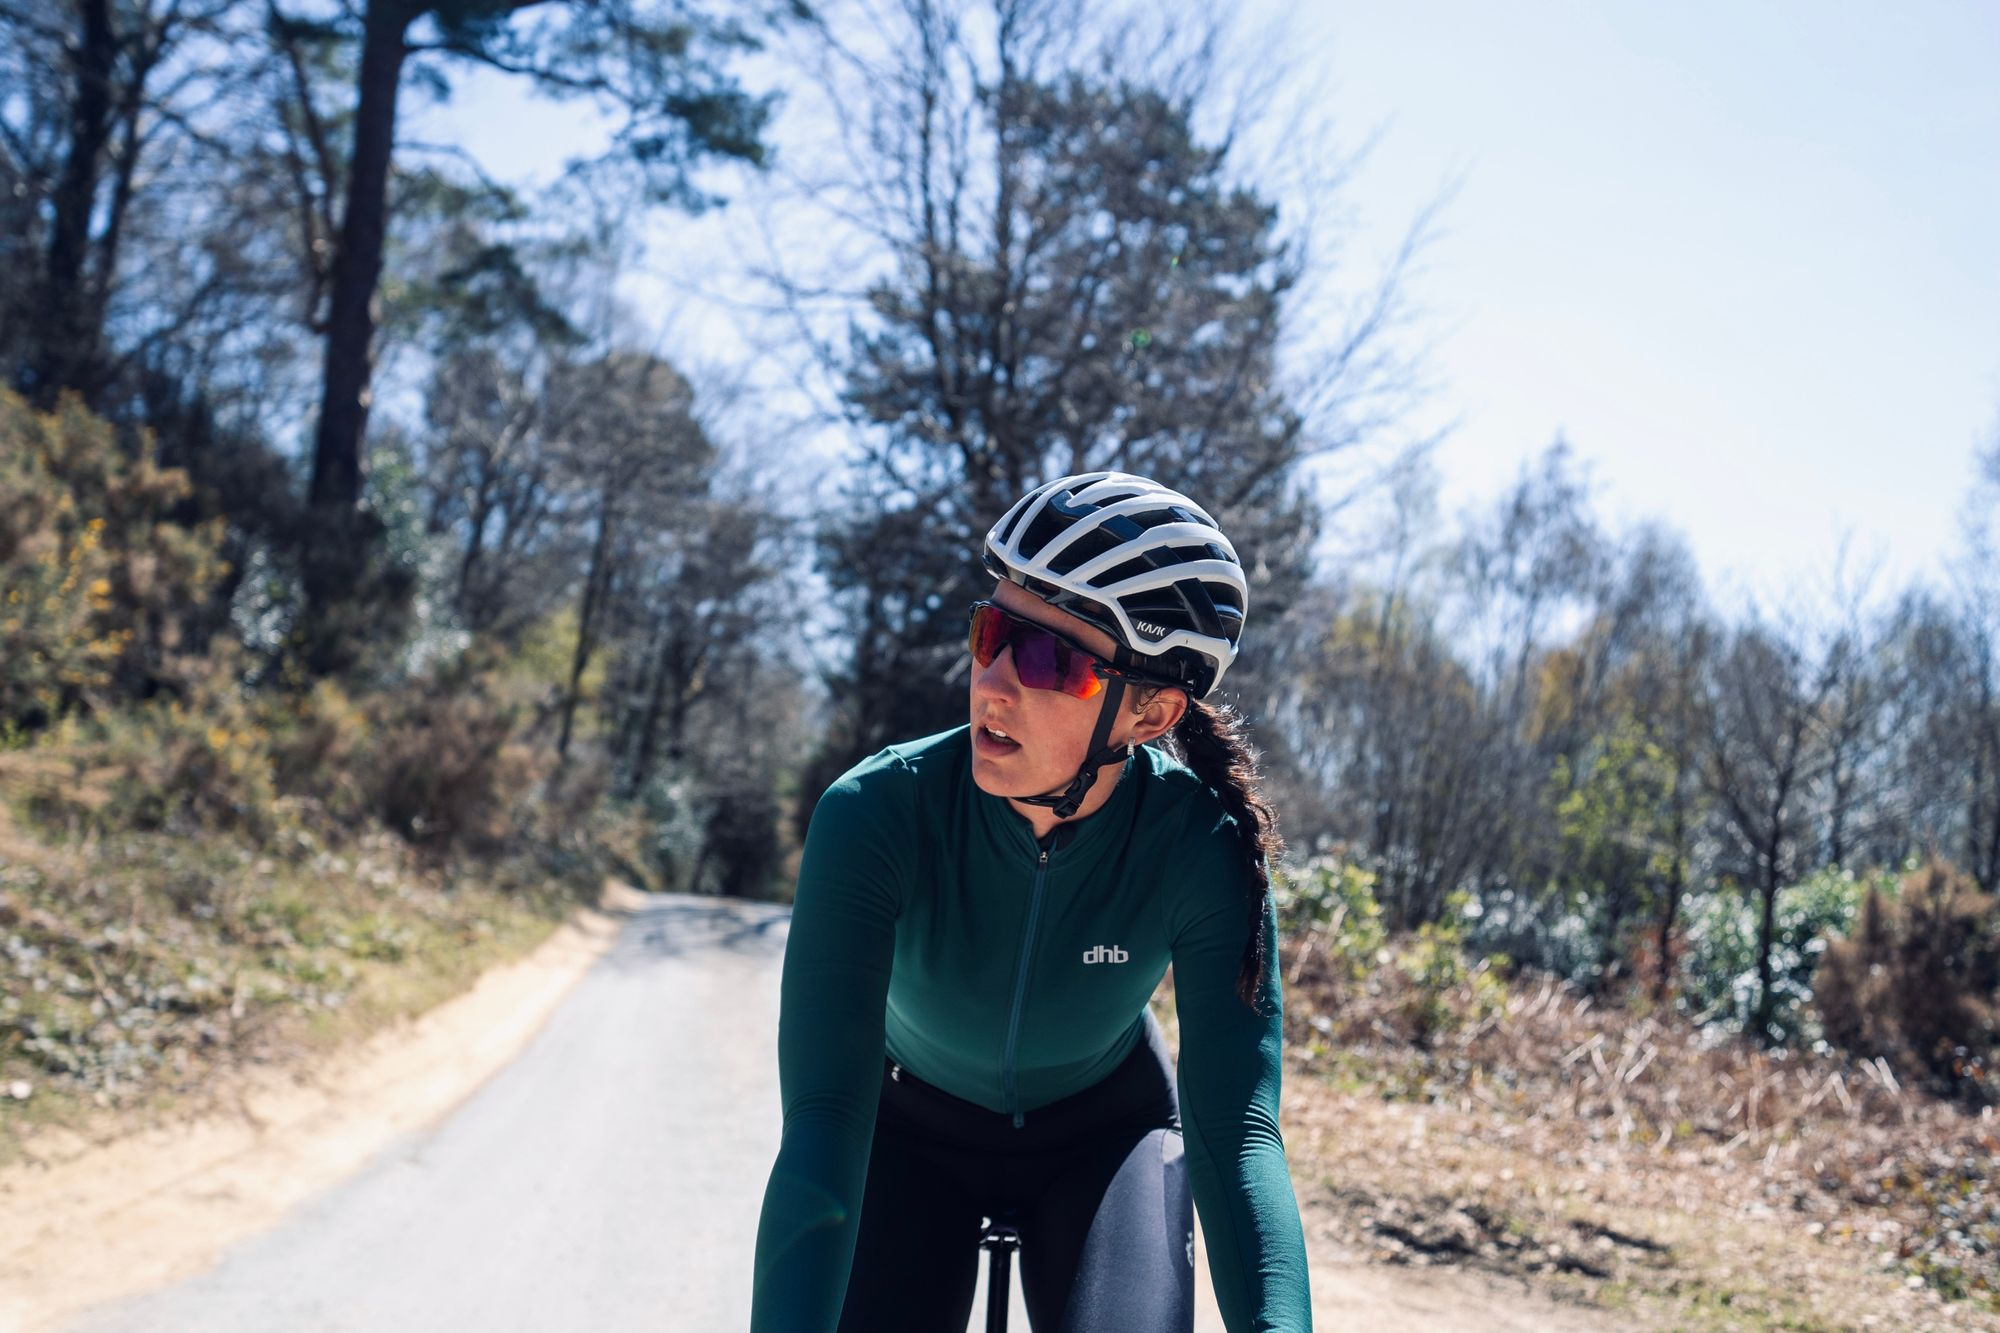 The women who cycle for a greener city - Savannah